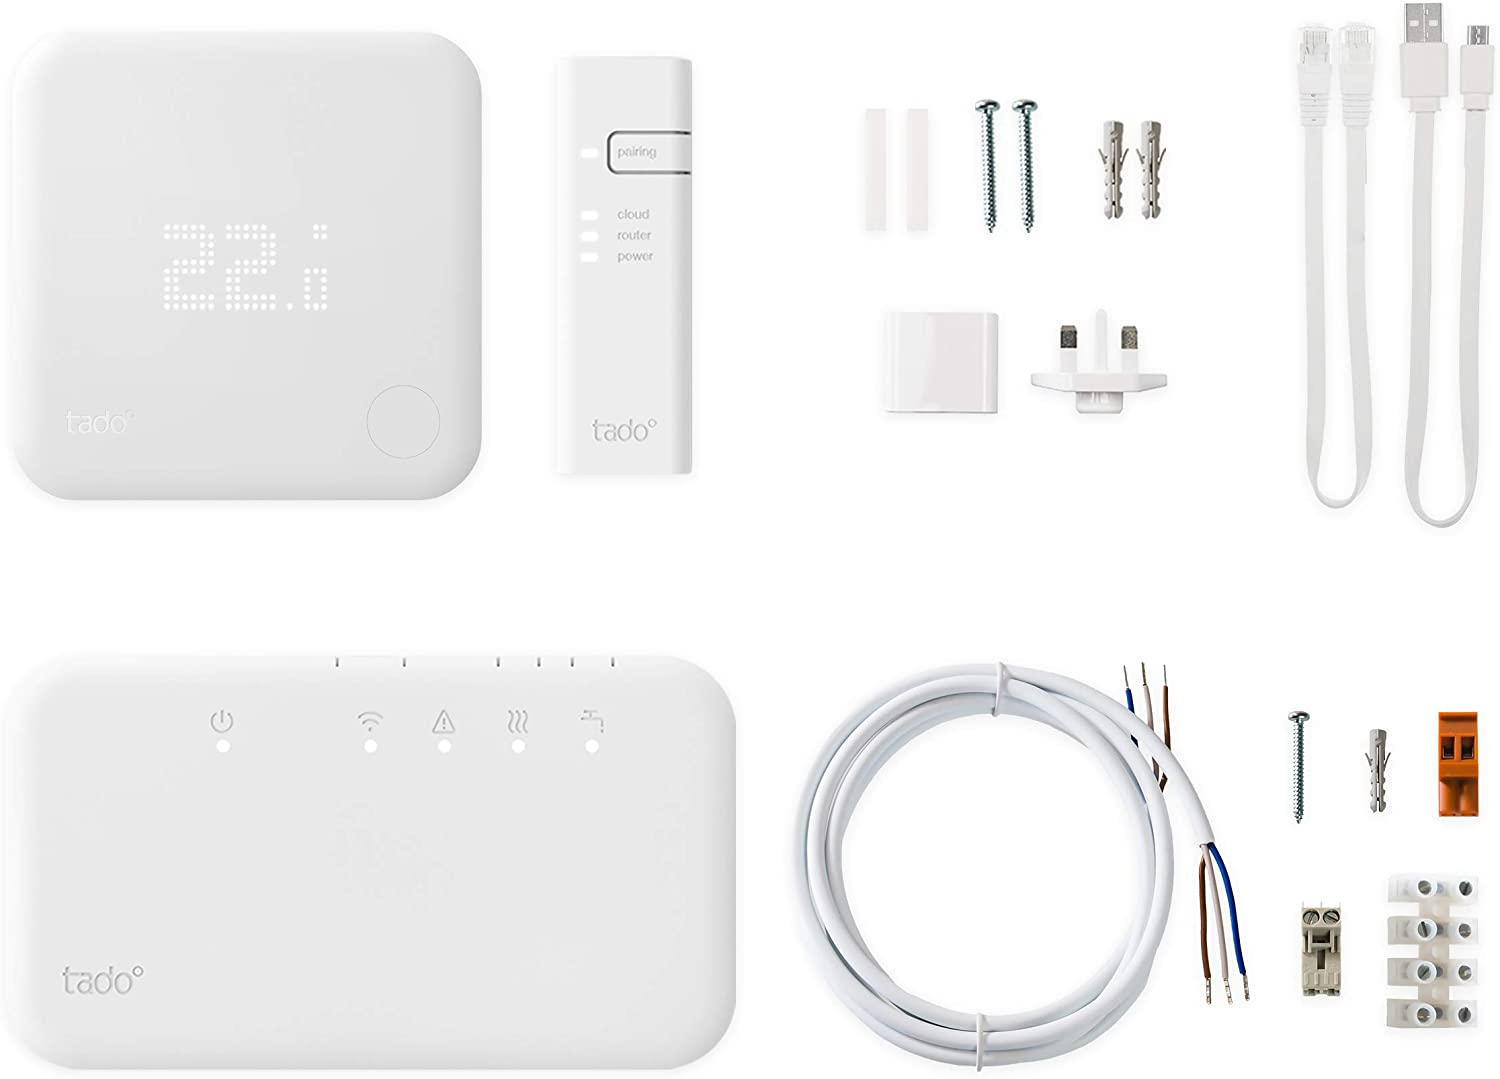 tado/° Wireless Smart Thermostat Starter Kit V3+ with Hot Water Control Improved Version: Easier Installation Process Siri and Google Assistant works with Alexa